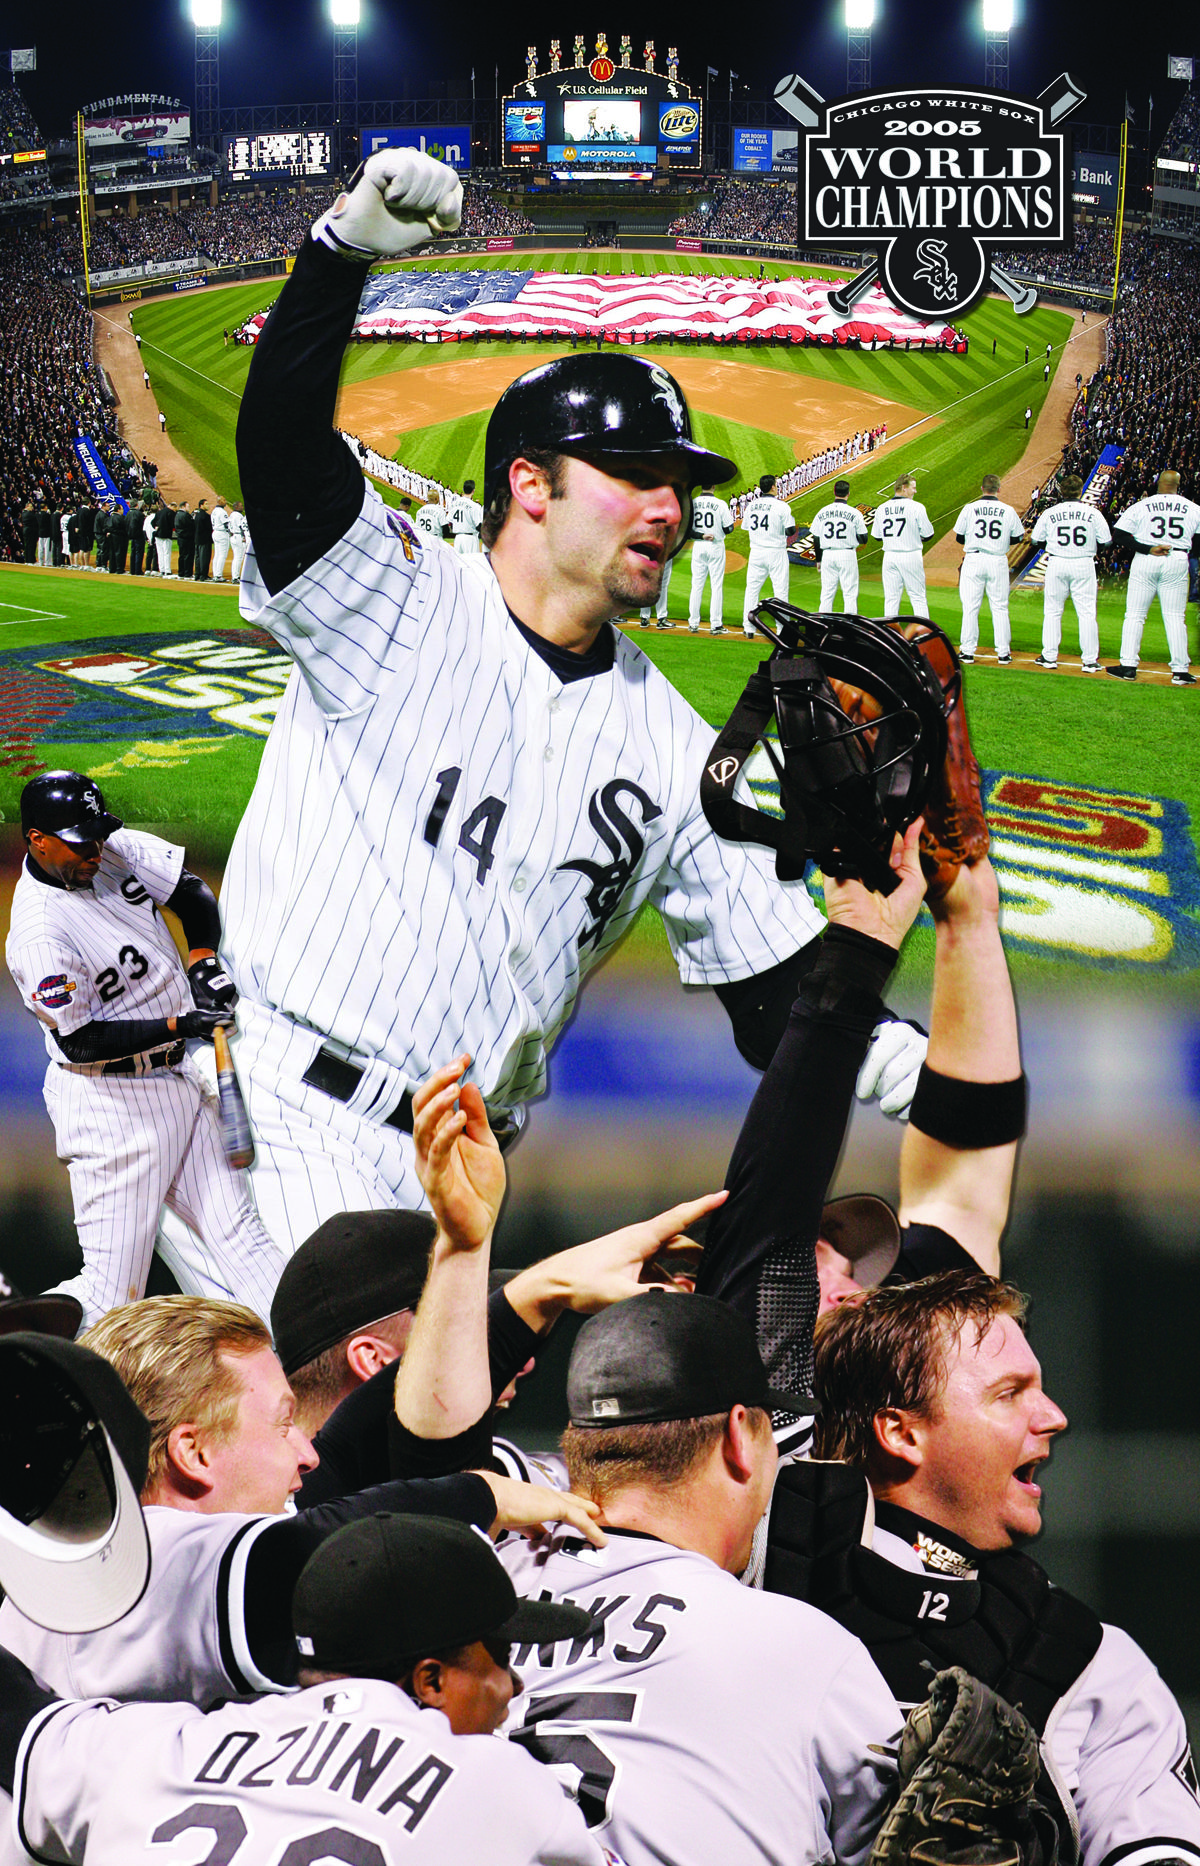 June 9 2012 Father Daughter Day And Commemorative 2005 World Series Canvas First 20 000 Fans White Sox Baseball Chicago Sports Chicago White Sox